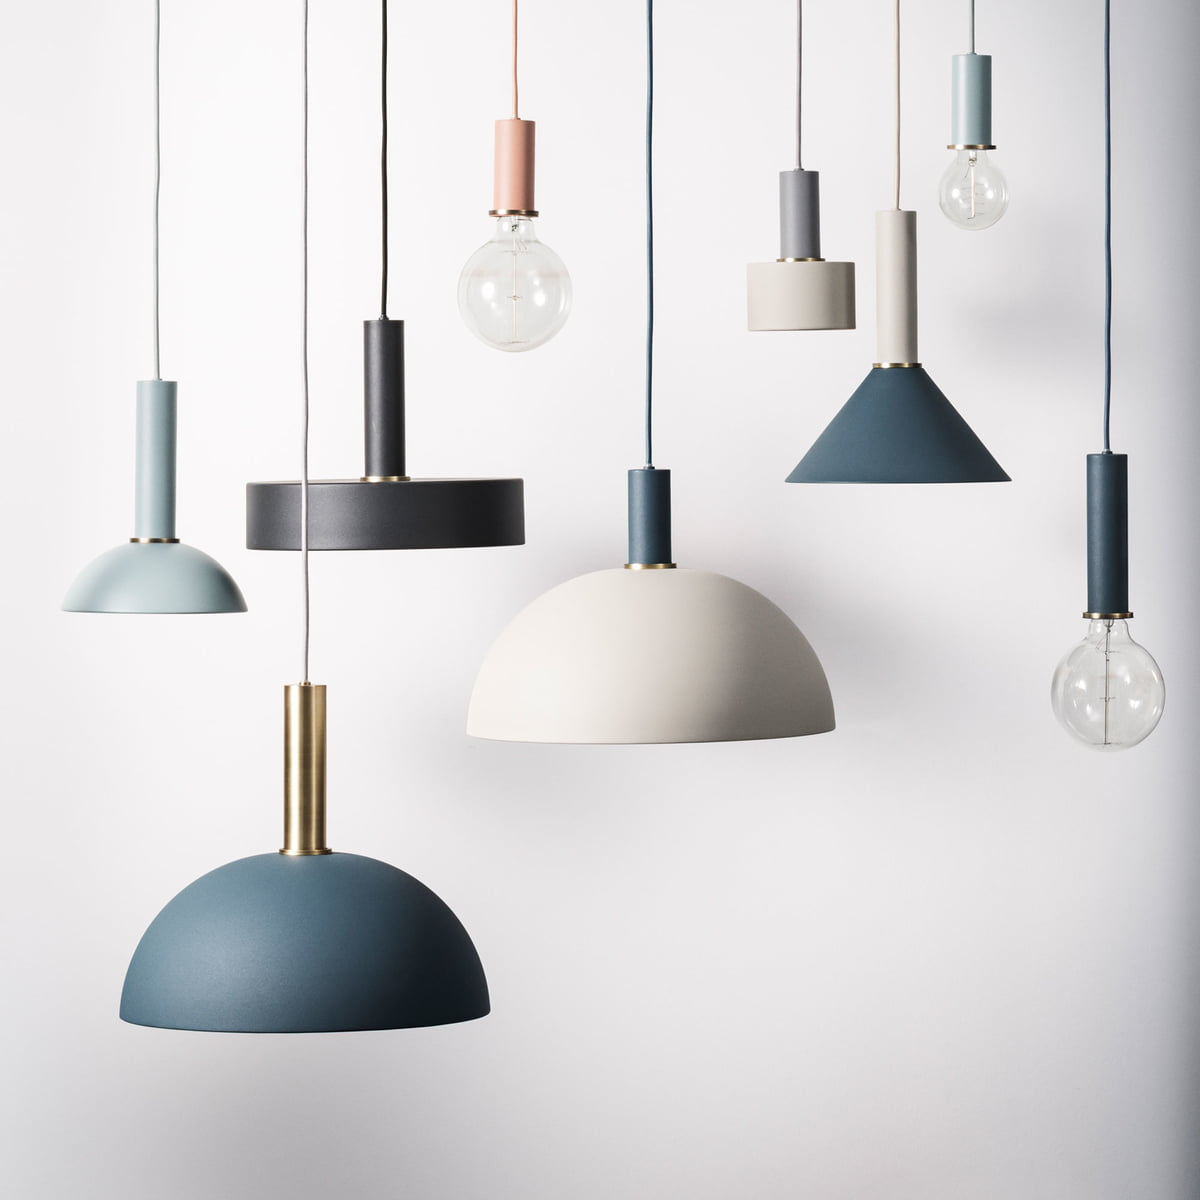 collect lighting pendant luminaires series. socket pendant lamp by ferm living online